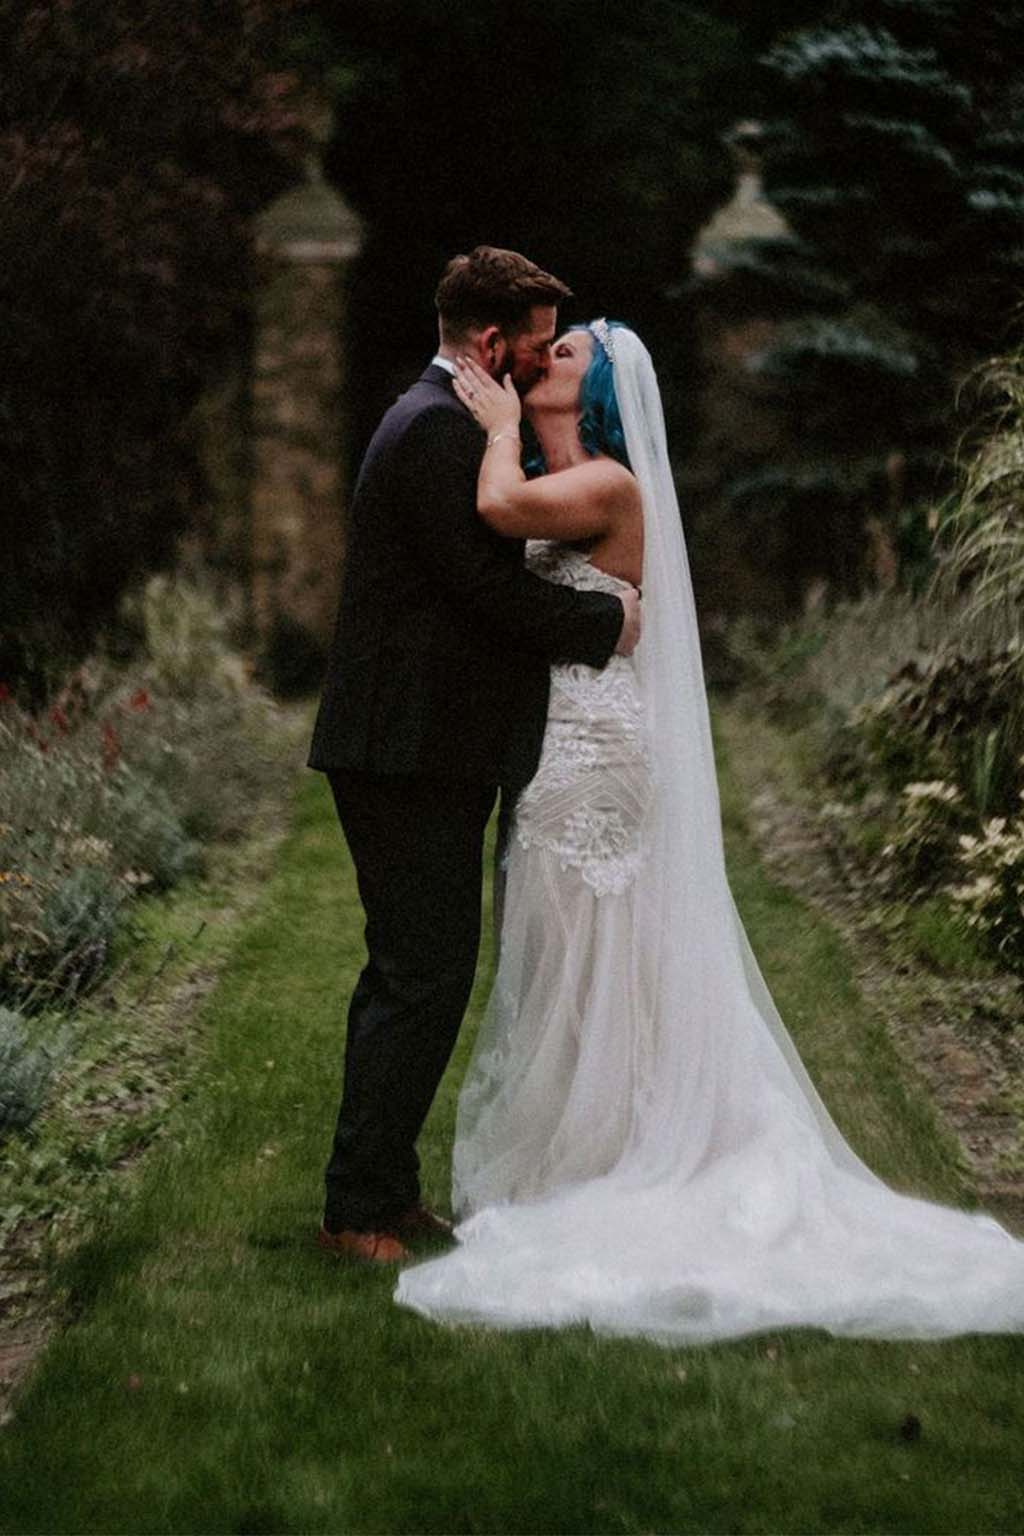 Melissa & Tom Tie The Knot At That Amazing Place Wedding Venue Wedding Dress Back Side